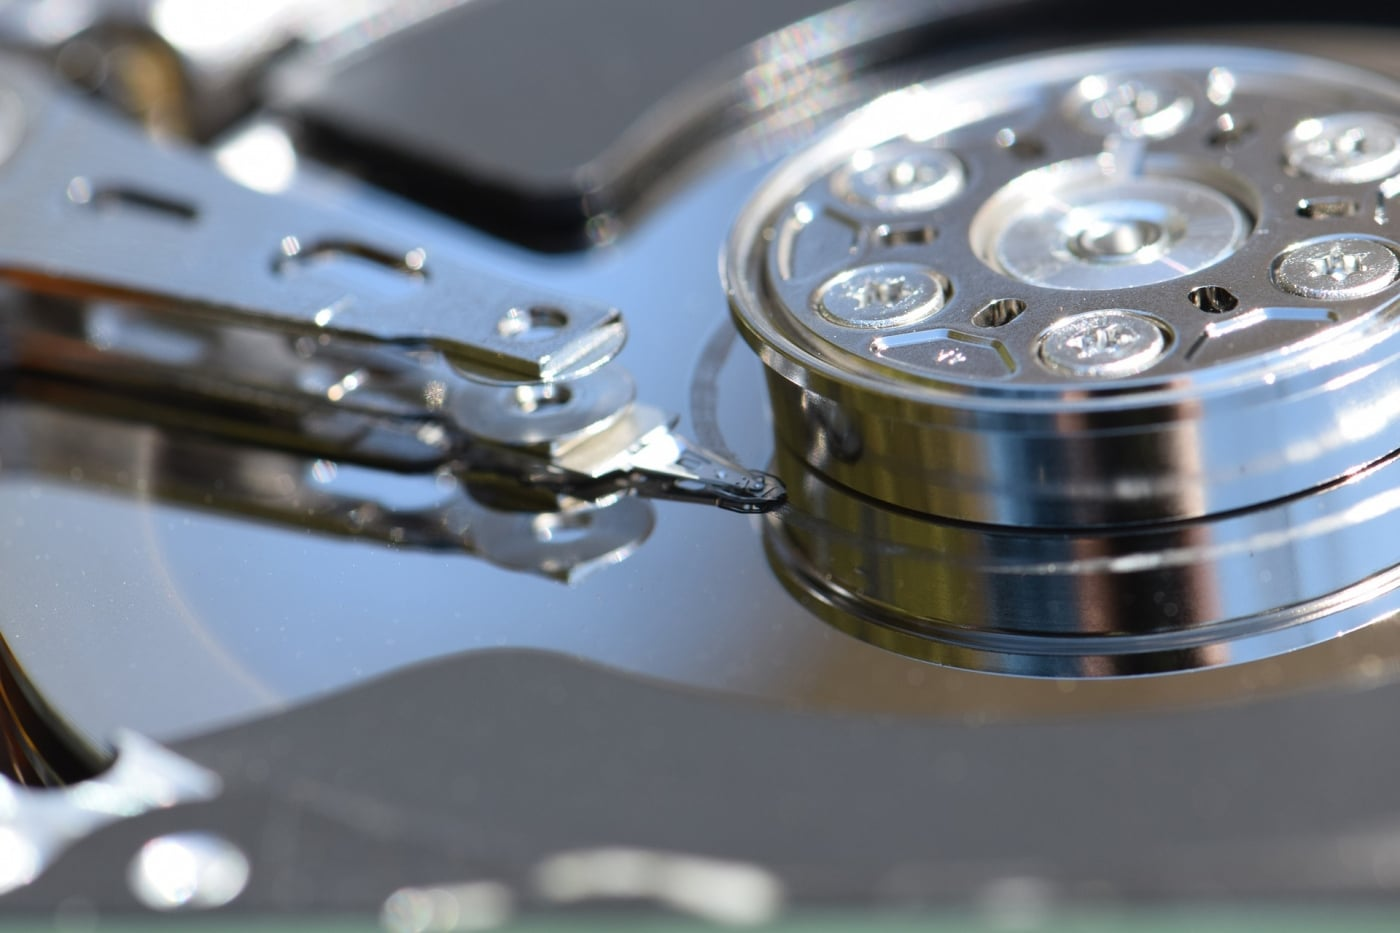 Capital data recovery